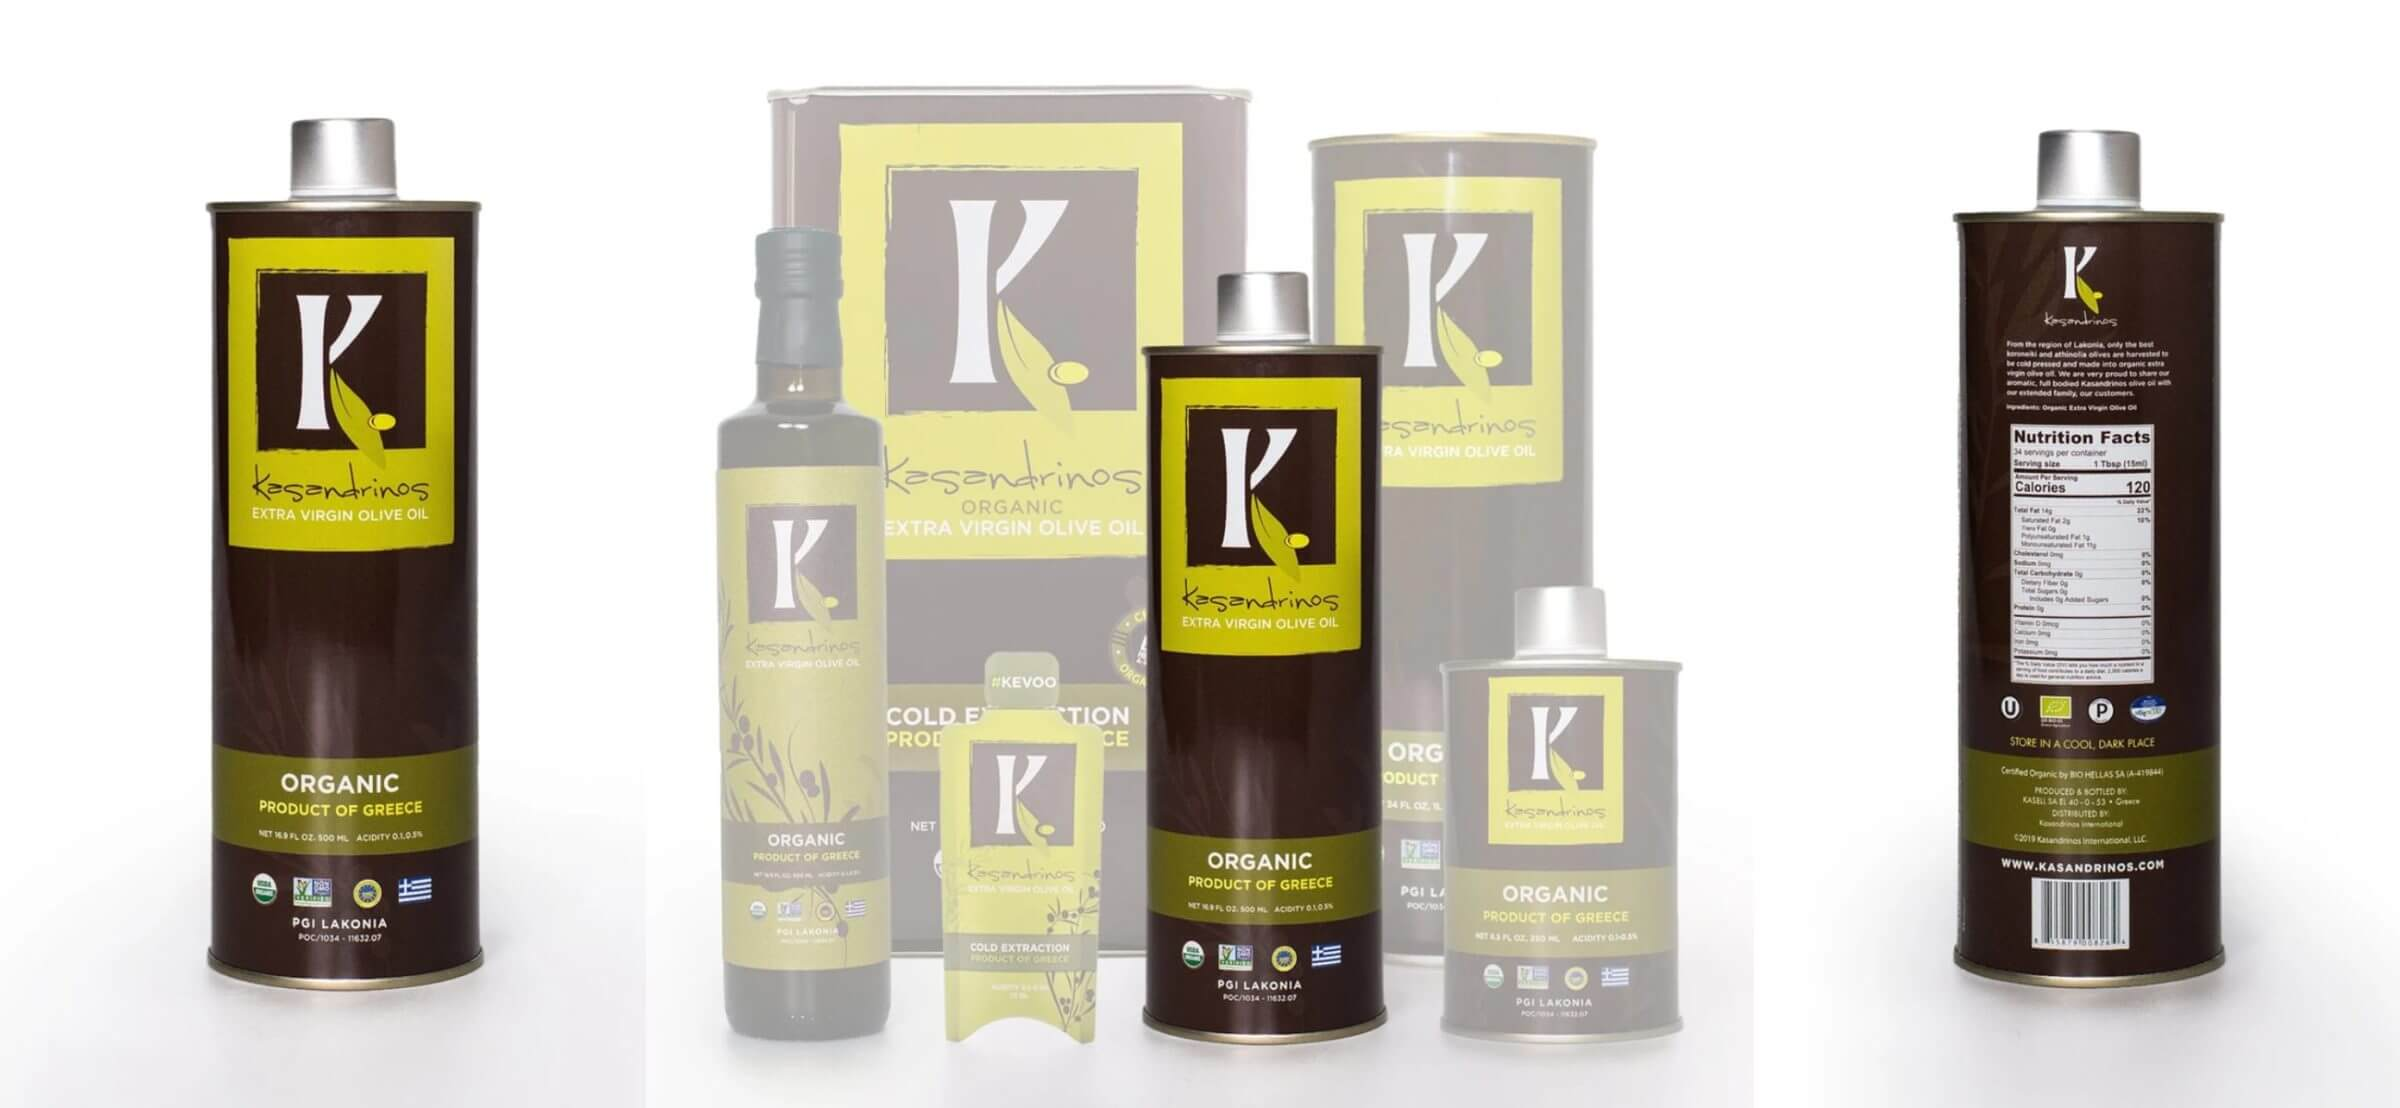 Kasandrinos extra-virgin olive oil is our brand of choice.